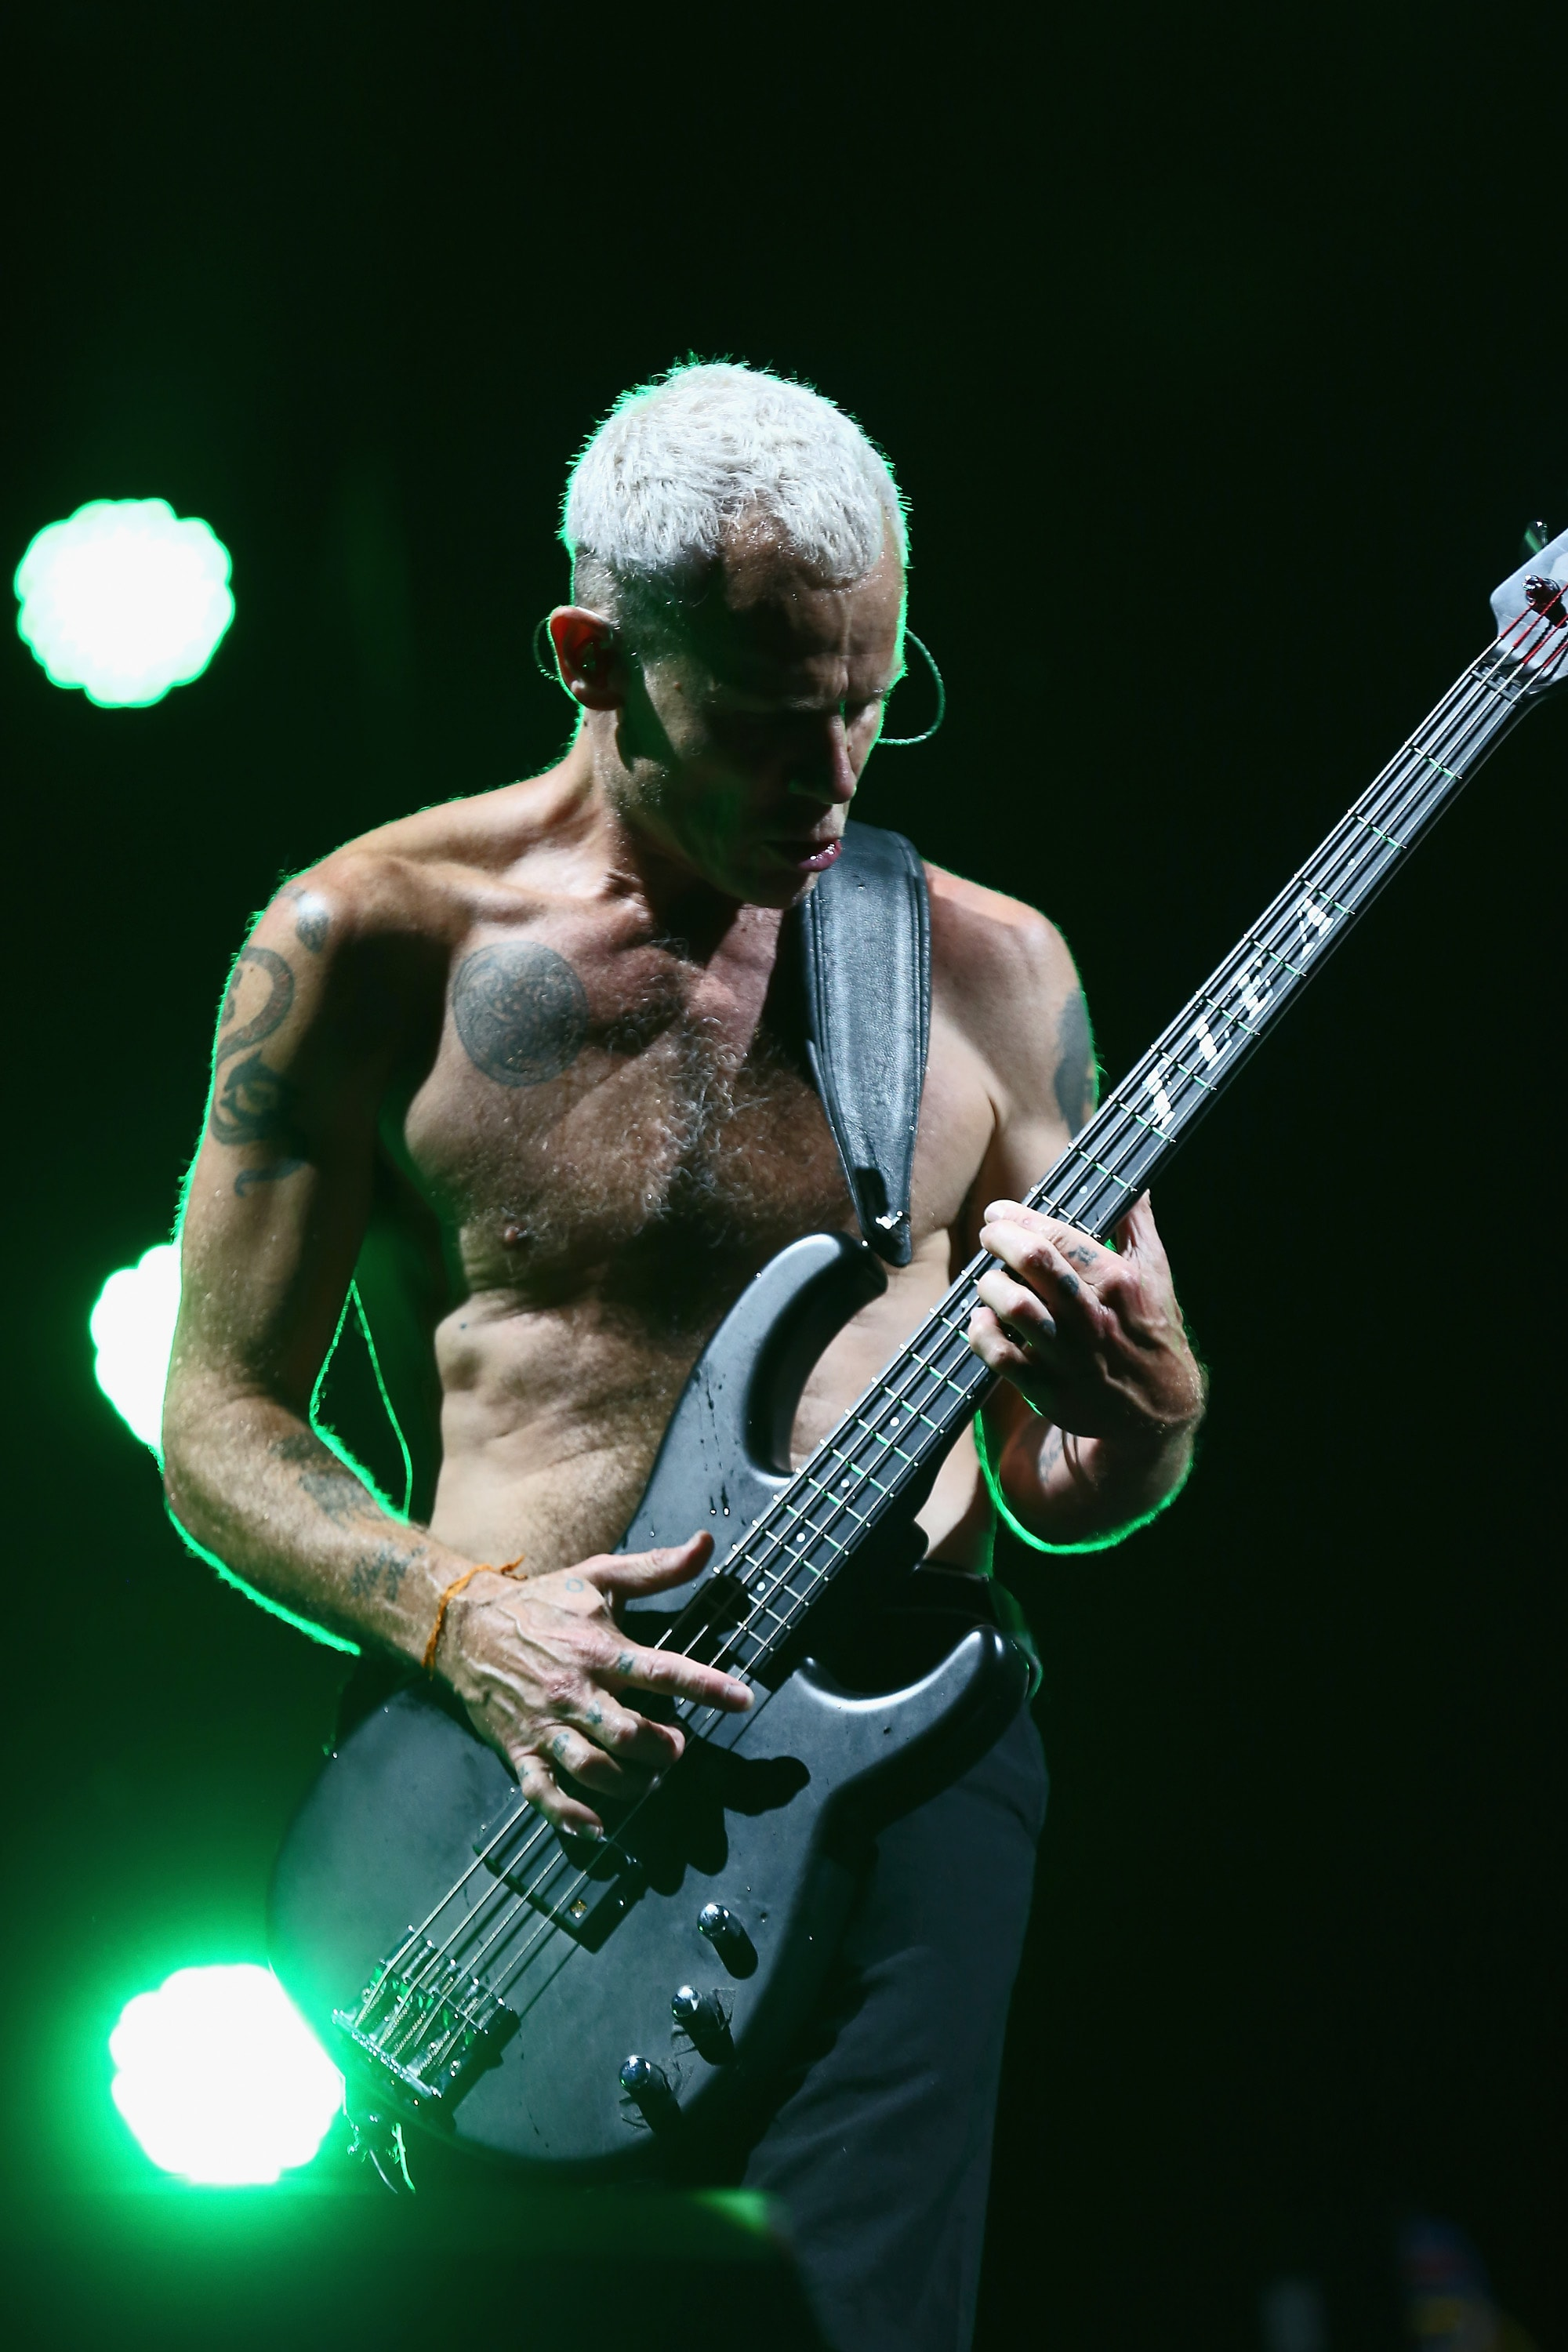 NEWPORT, ISLE OF WIGHT - JUNE 14: Red Hot Chili Peppers performs at The Isle of Wight Festival at Seaclose Park on June 14, 2014 in Newport, Isle of Wight.